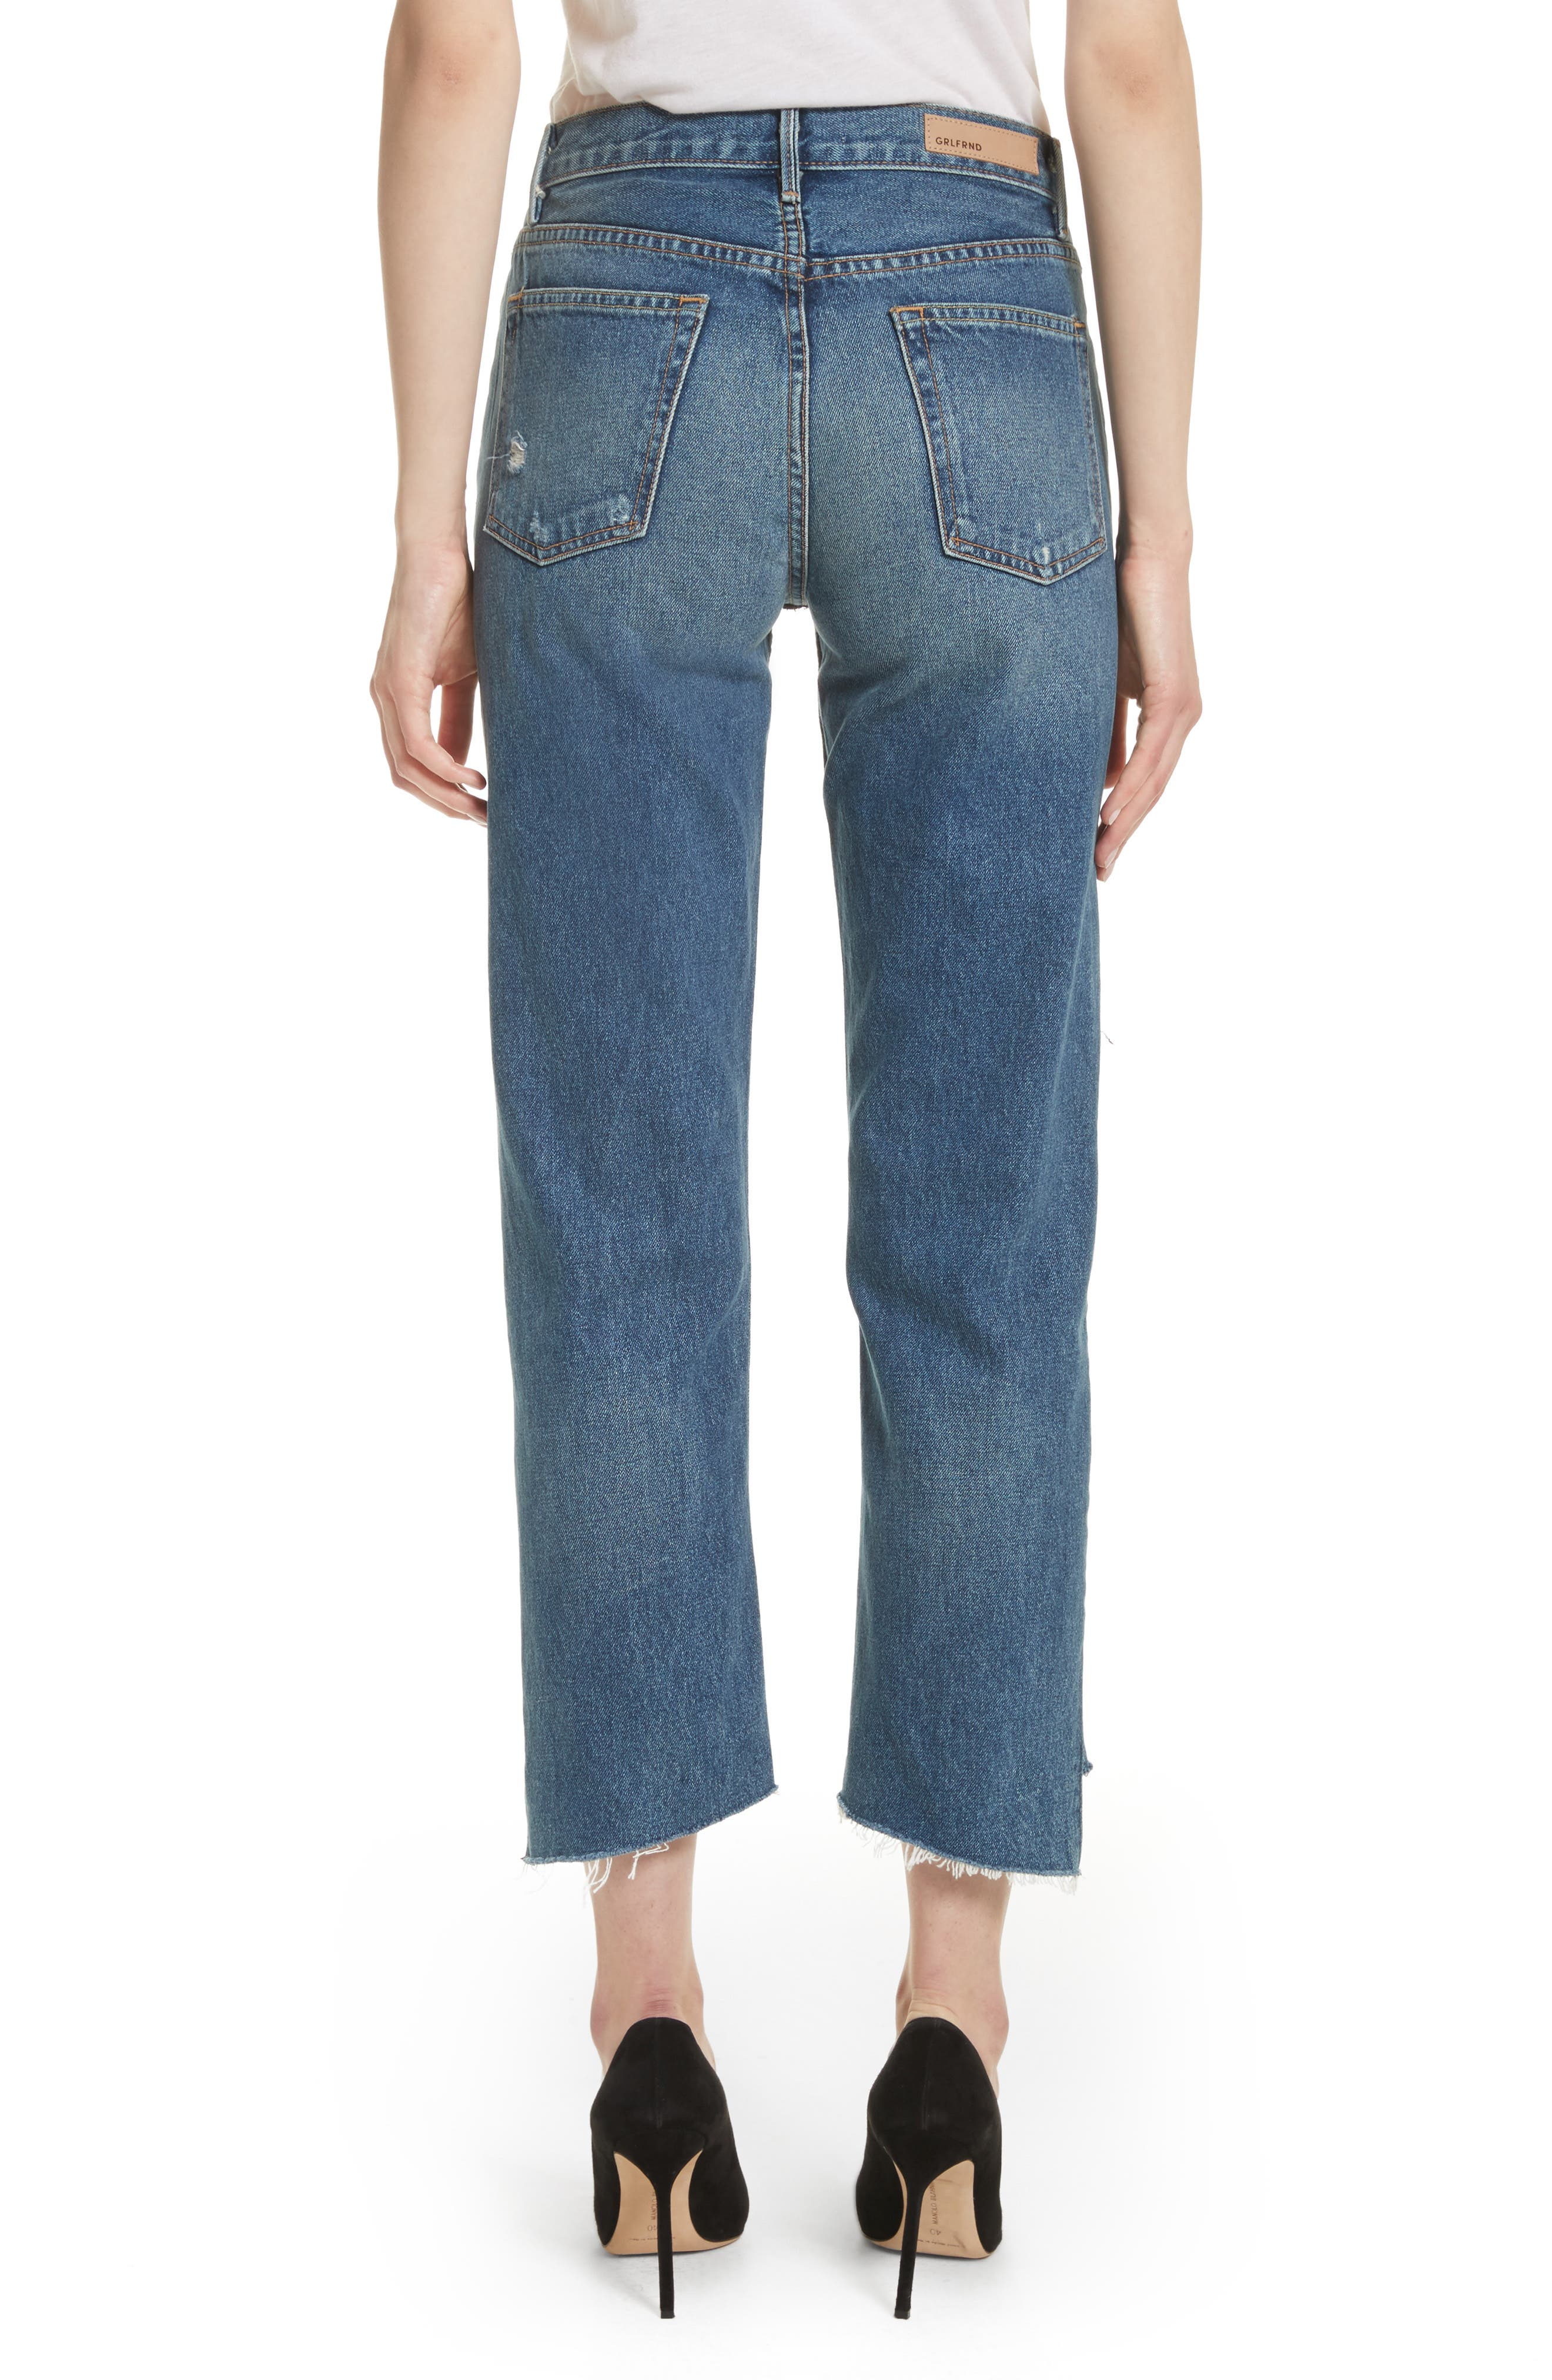 Helena Rigid High Waist Straight Jeans,                             Alternate thumbnail 2, color,                             CLOSE TO YOU